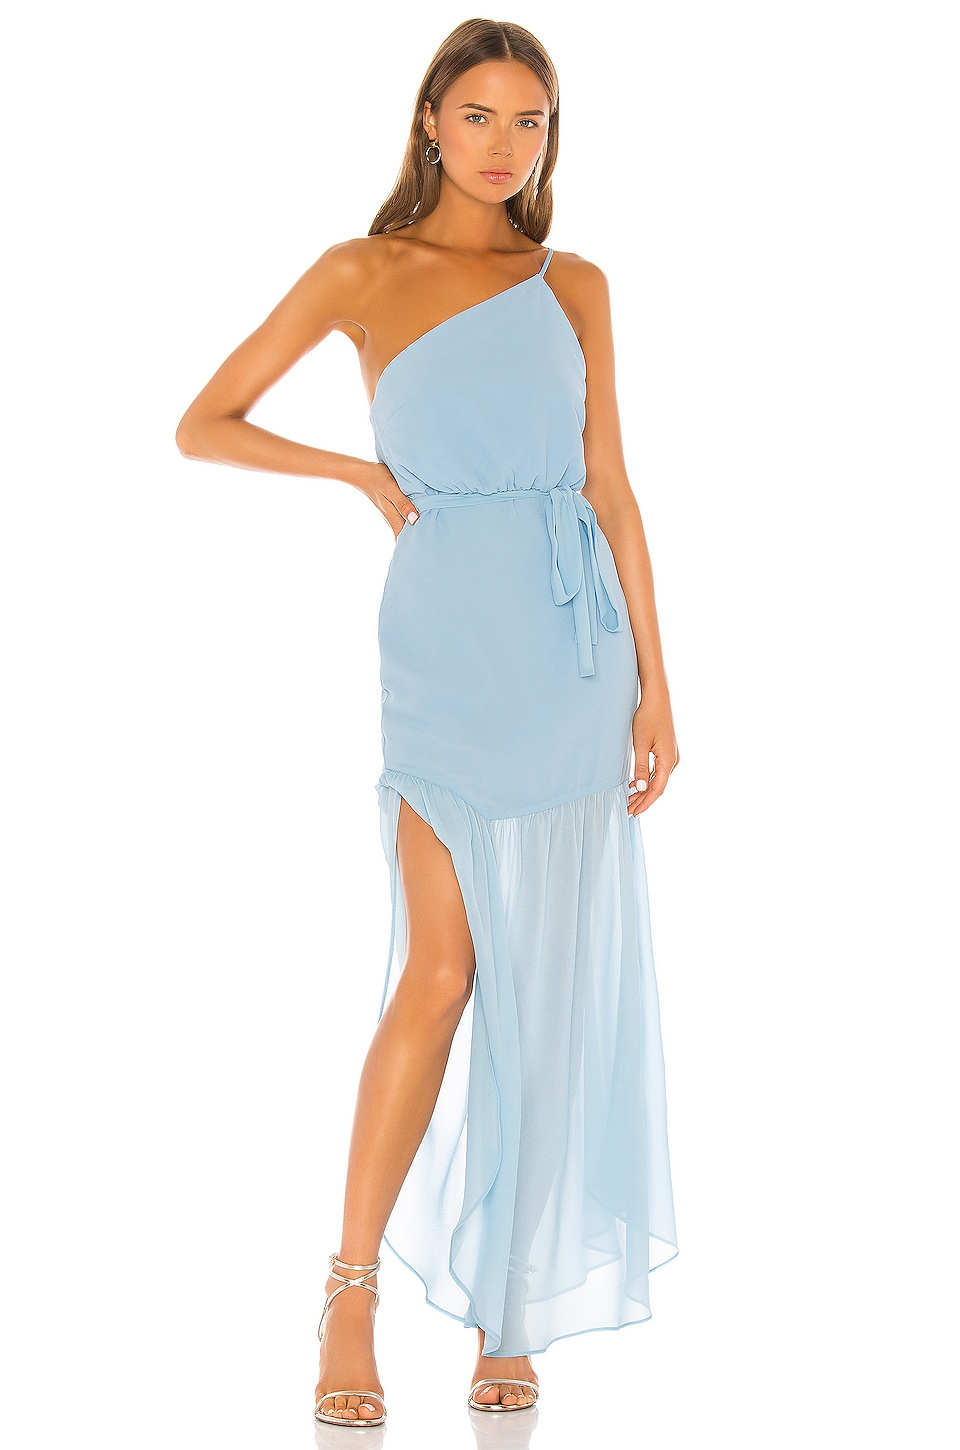 MAJORELLE Monalisa Gown in Baby Blue